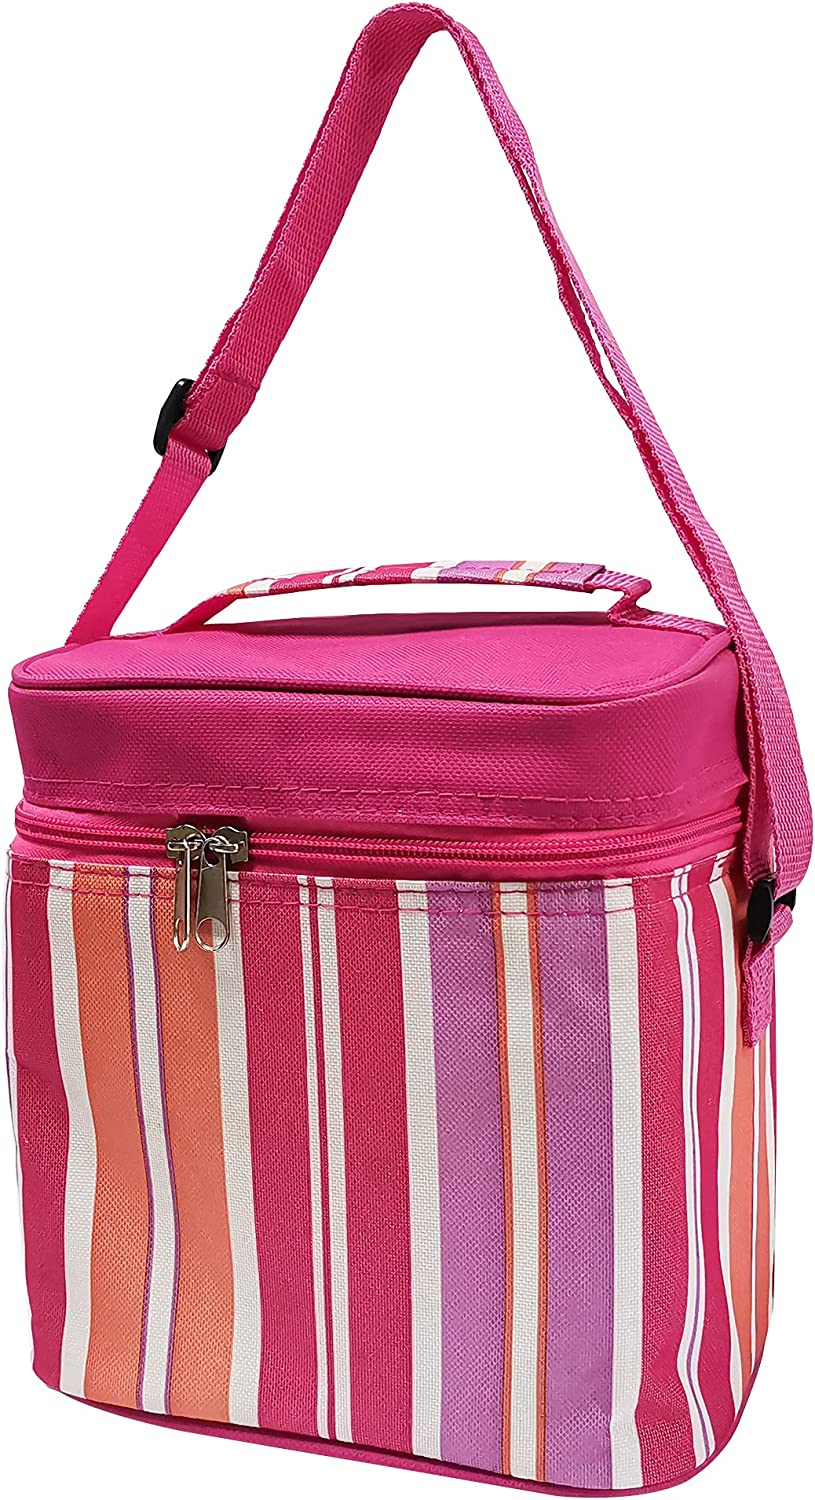 Reusable Insulated Lunch Bag for Office Work School Picnic Beach (Pink Stripes)